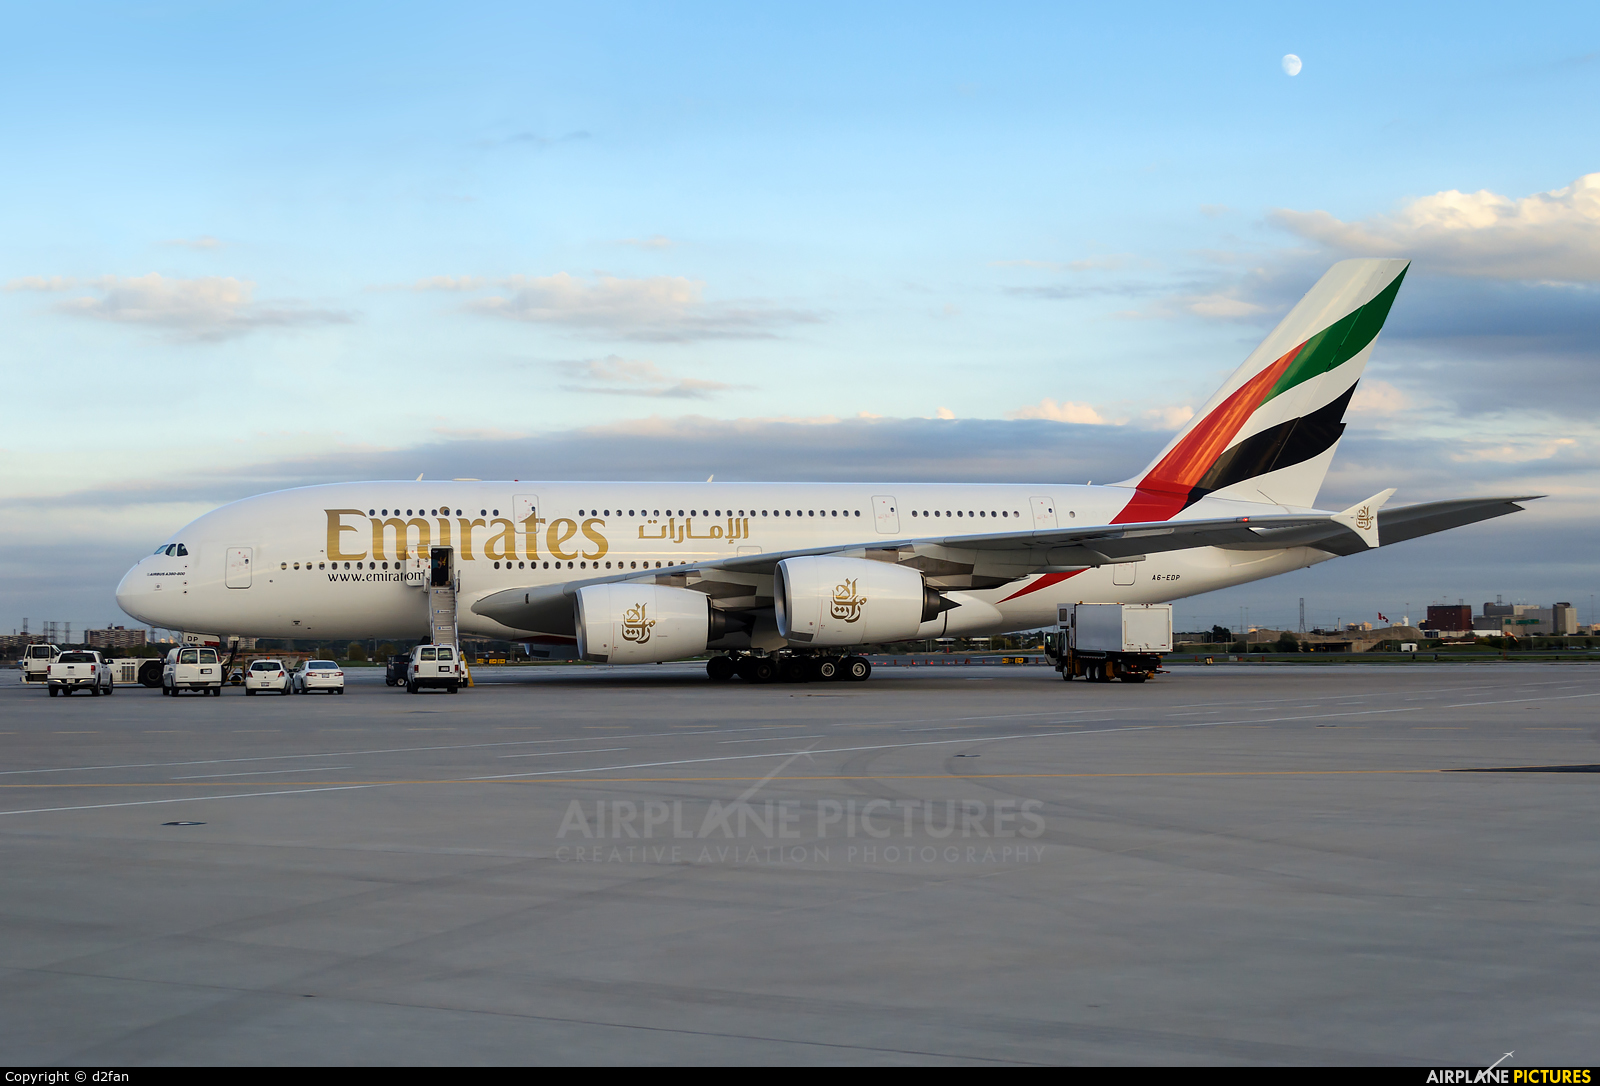 Emirates Airlines A6-EDP aircraft at Toronto - Pearson Intl, ON